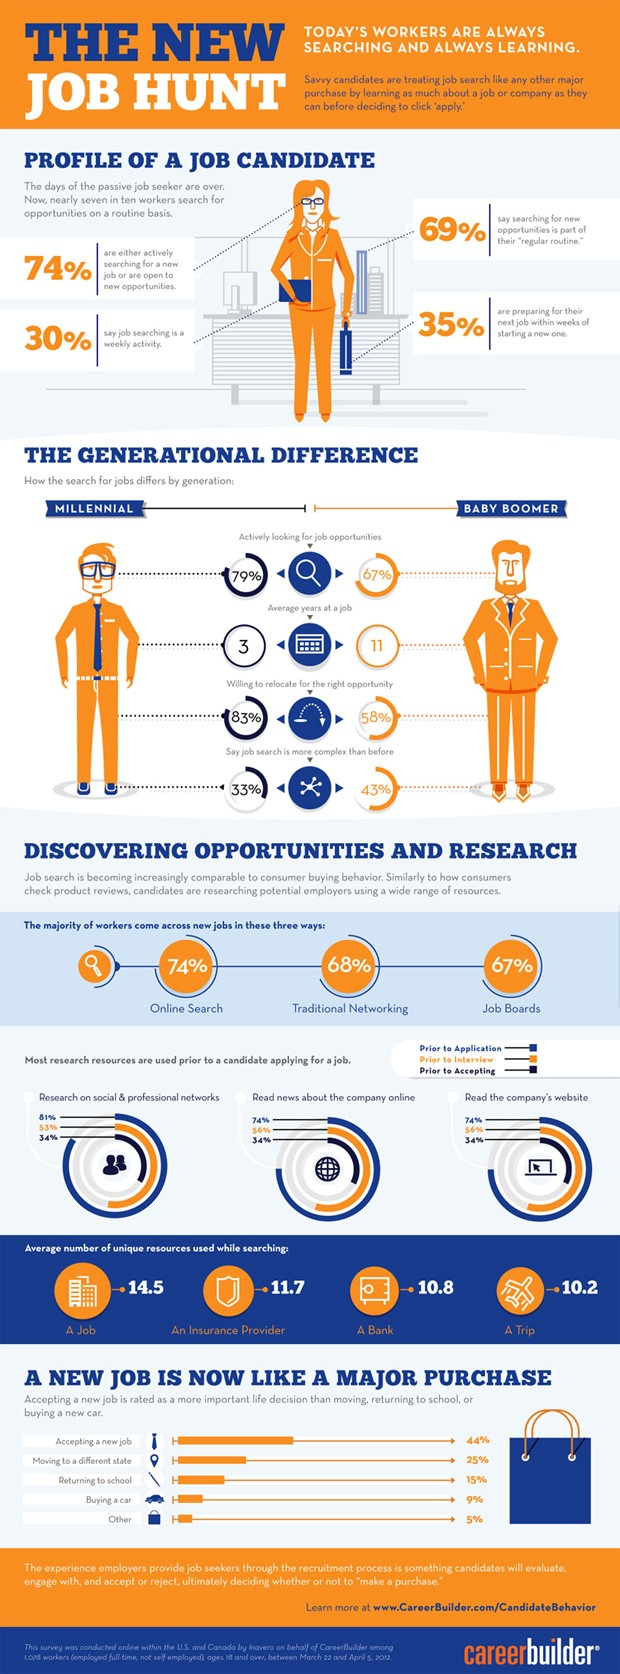 the new job hunt infographic